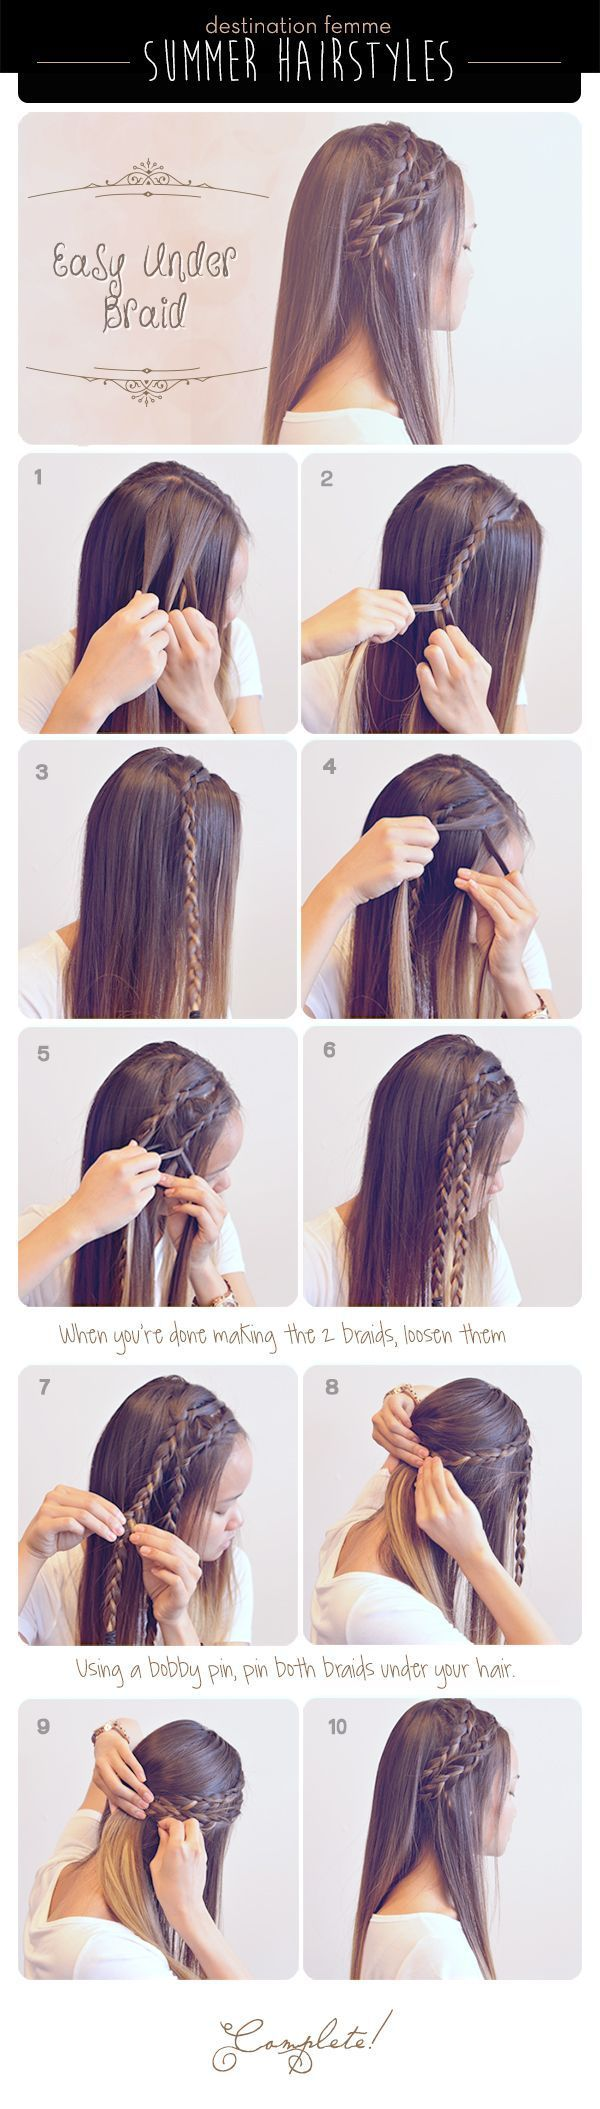 Summer Braid Hairstyle For Summer Pictures Photos And Images For Facebook Tumblr Pinterest And Twitter Braids For Long Hair Hair Braid Diy Braided Hairdo